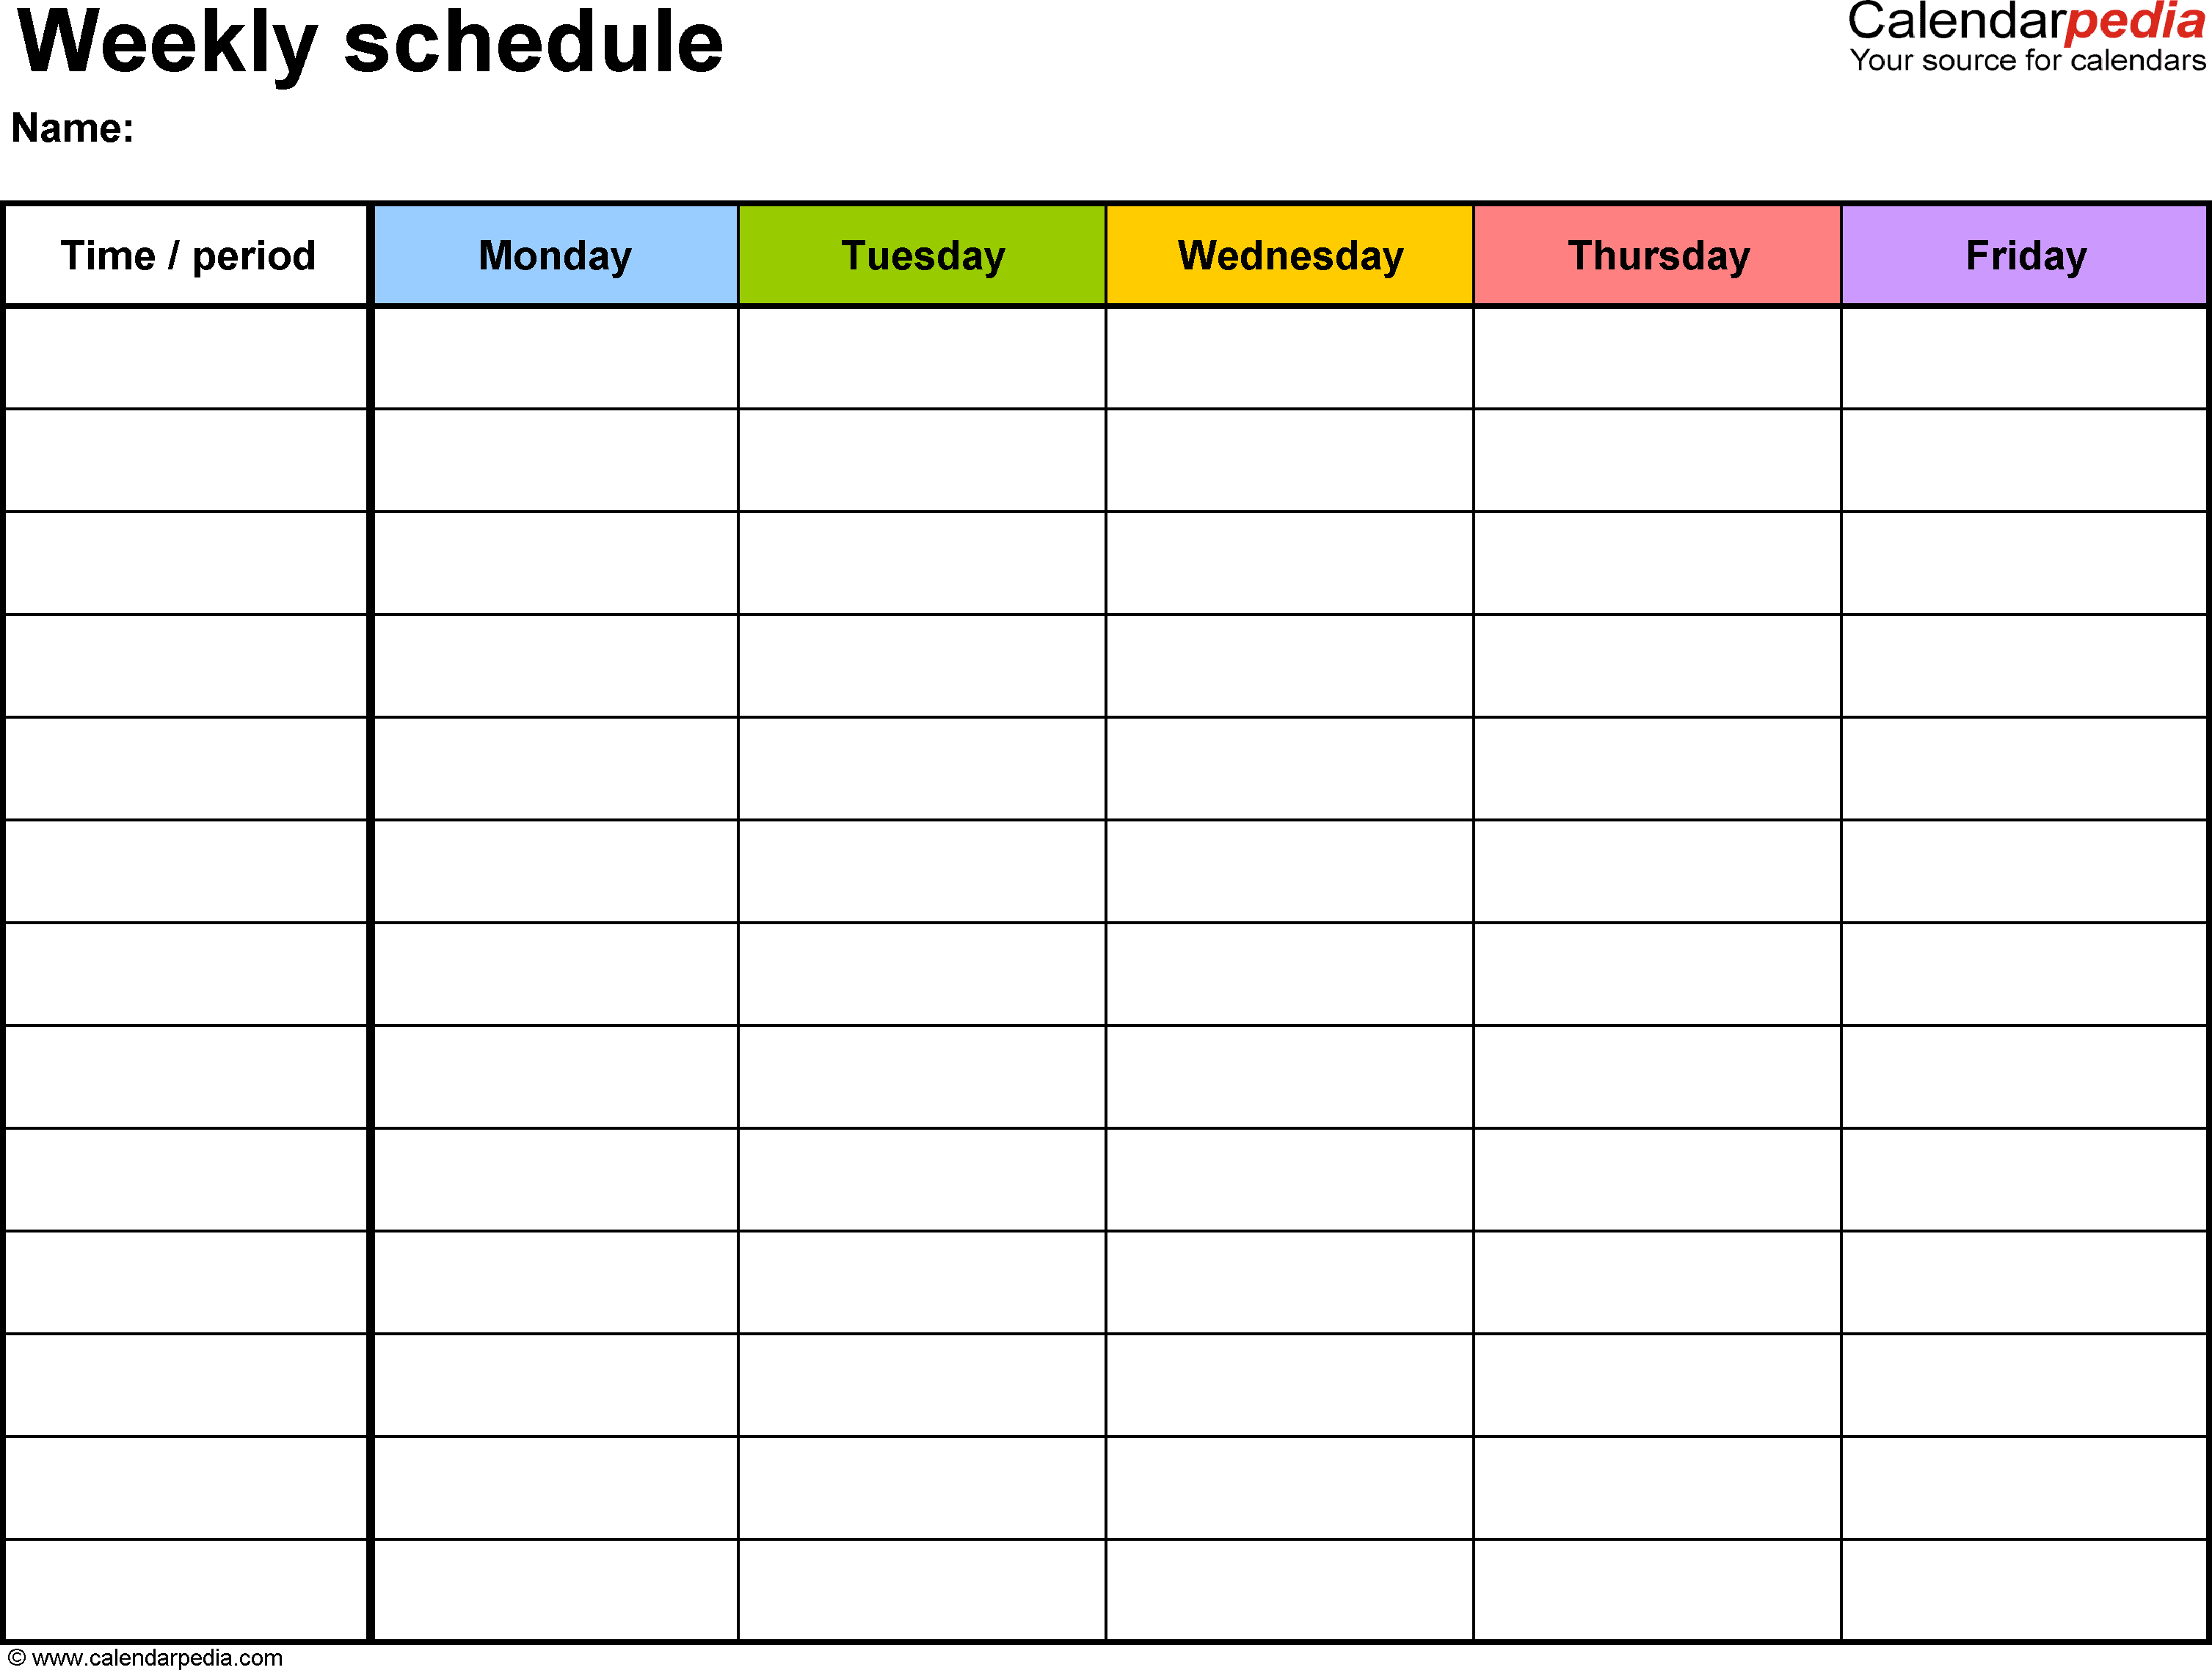 Free Weekly Schedule Templates For Pdf - 18 Templates with Printable Blank Calendar Week